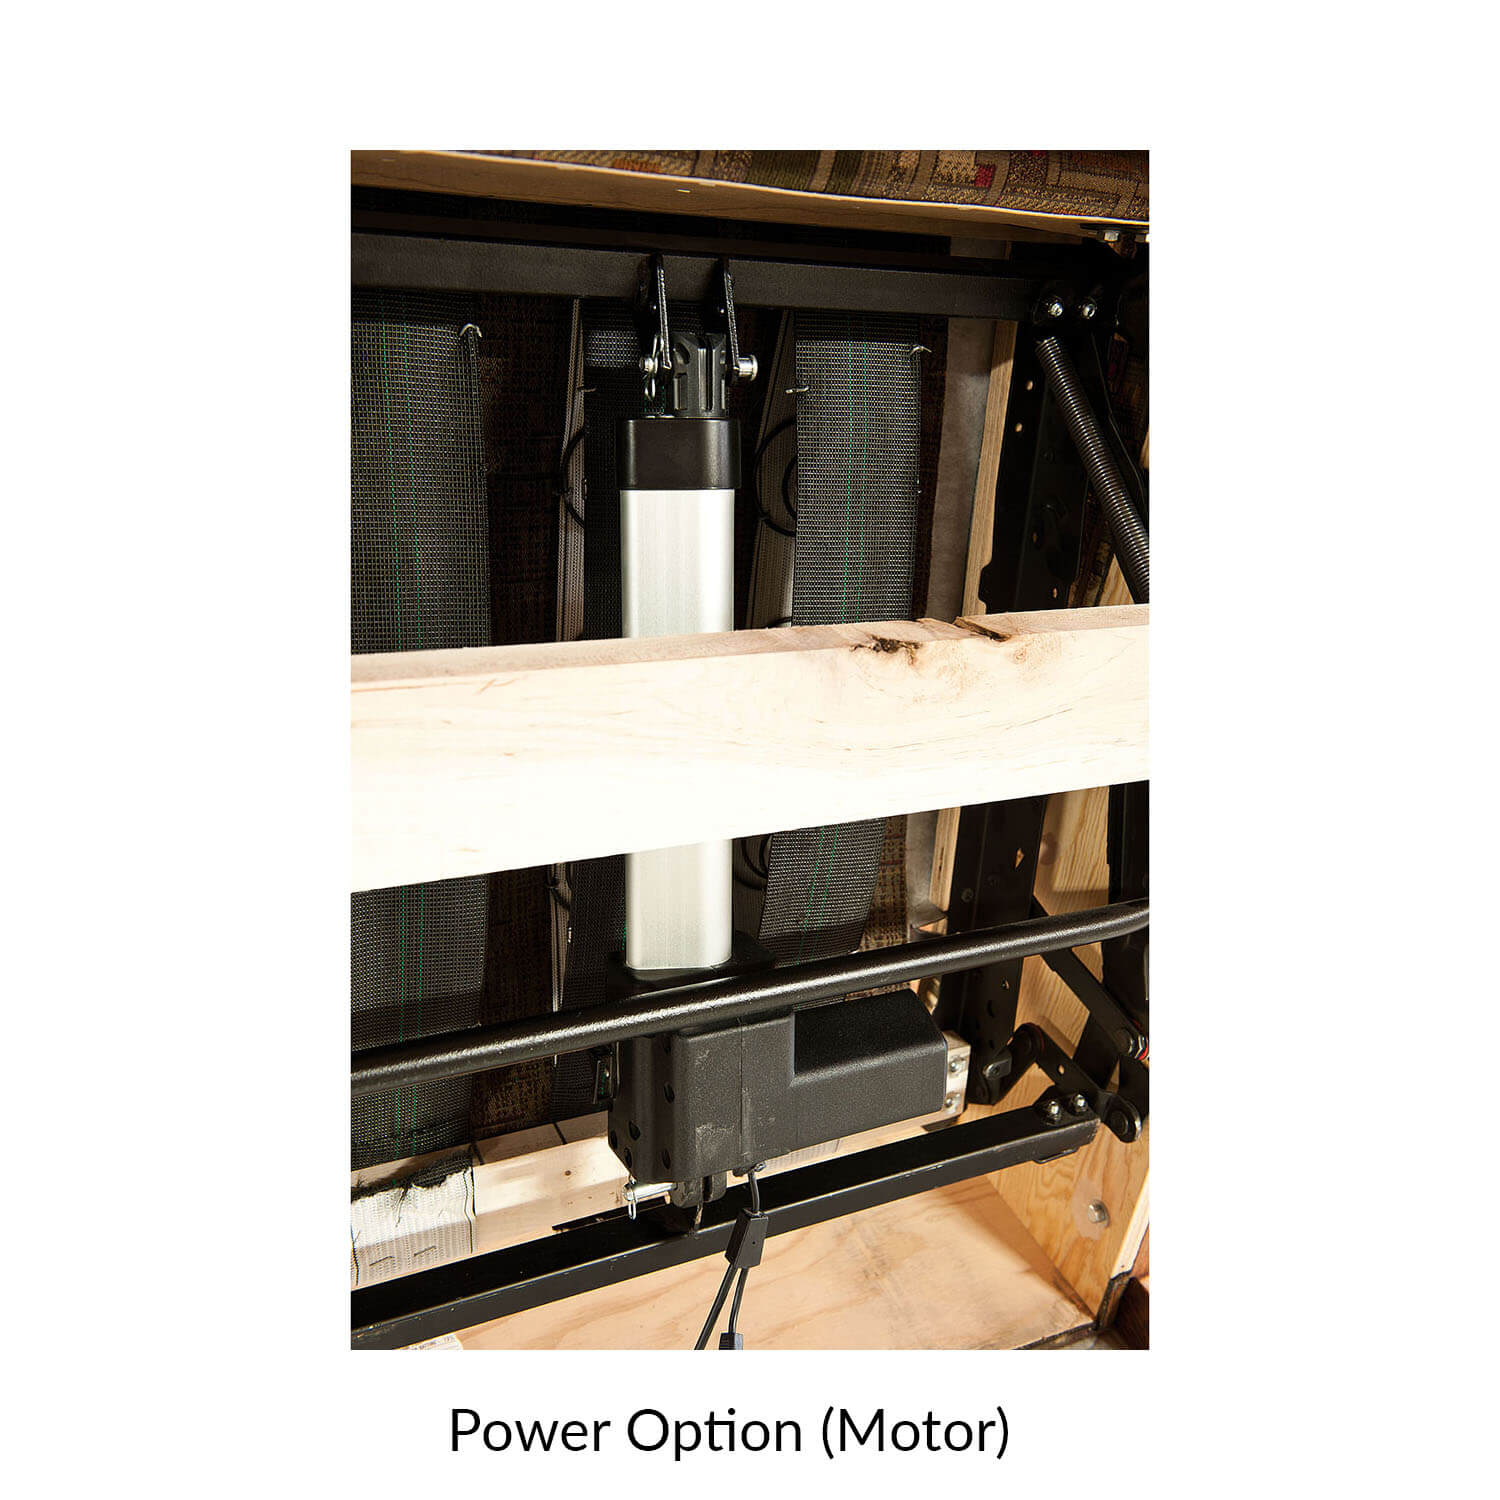 power-option-motor-.jpg